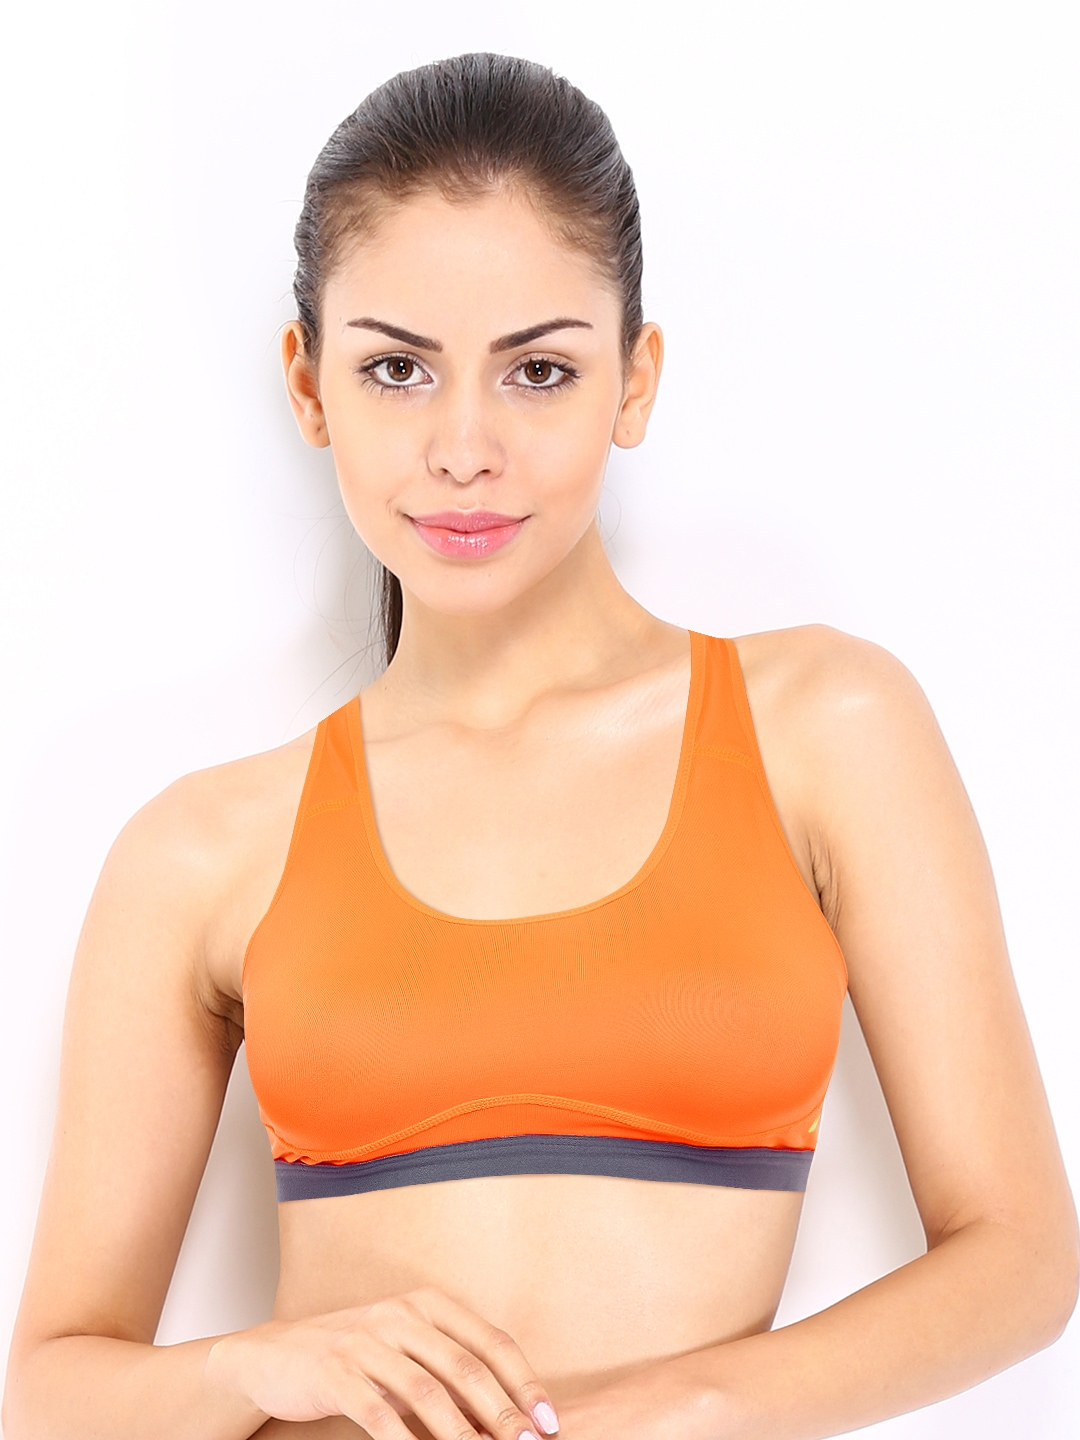 Women's Sports Bras Offer Comfortable Control in a Variety of Styles Wearing the correct women's sports bra for your activity makes all the difference in your workout. In addition to the picking the right style, you have a choice of an array of colors and popular brand names, such as Champion, Hanes, and Under Armour.